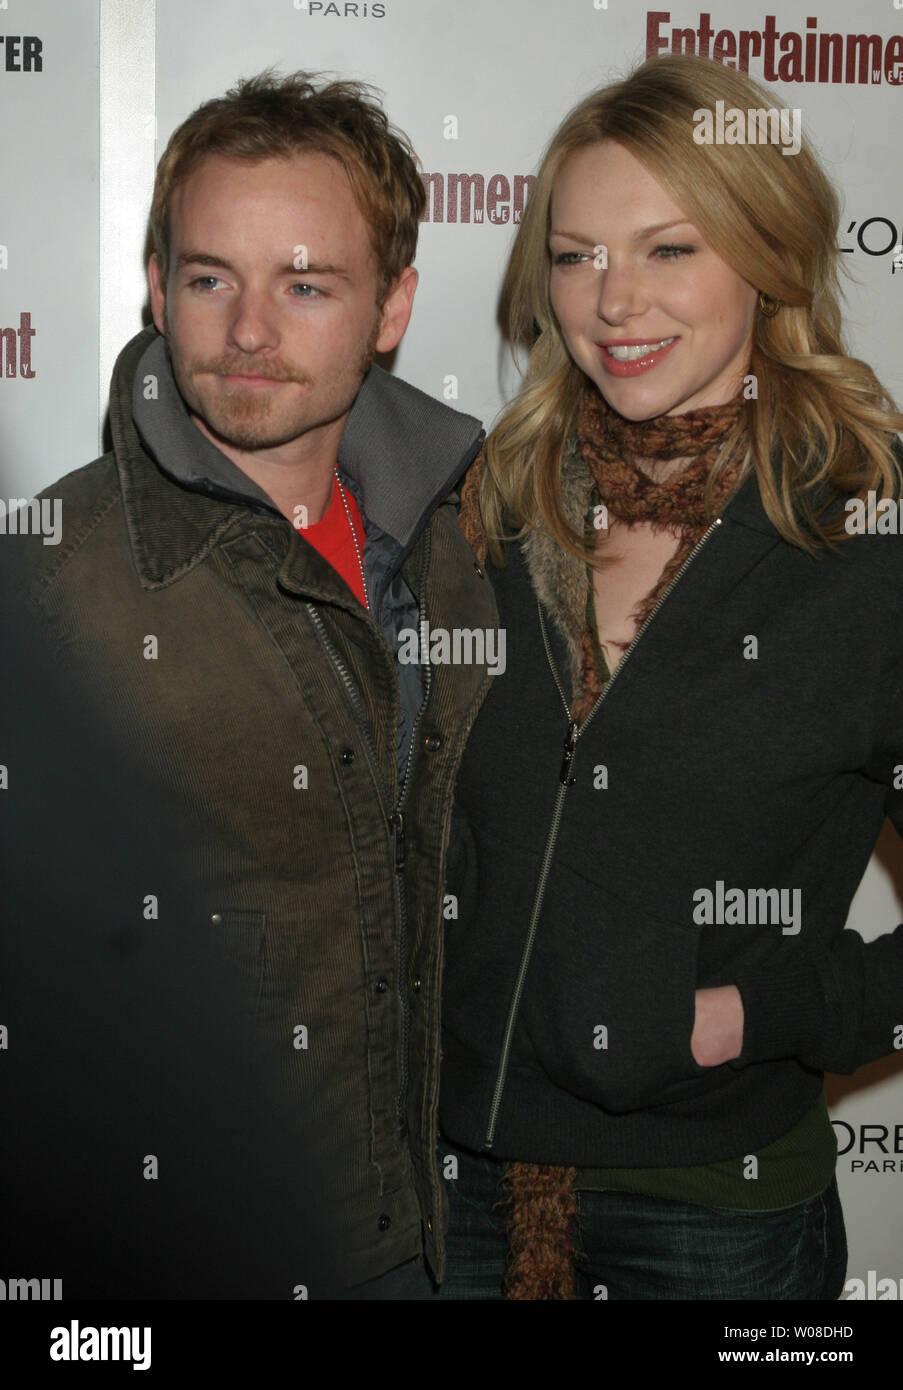 christopher masterson brother